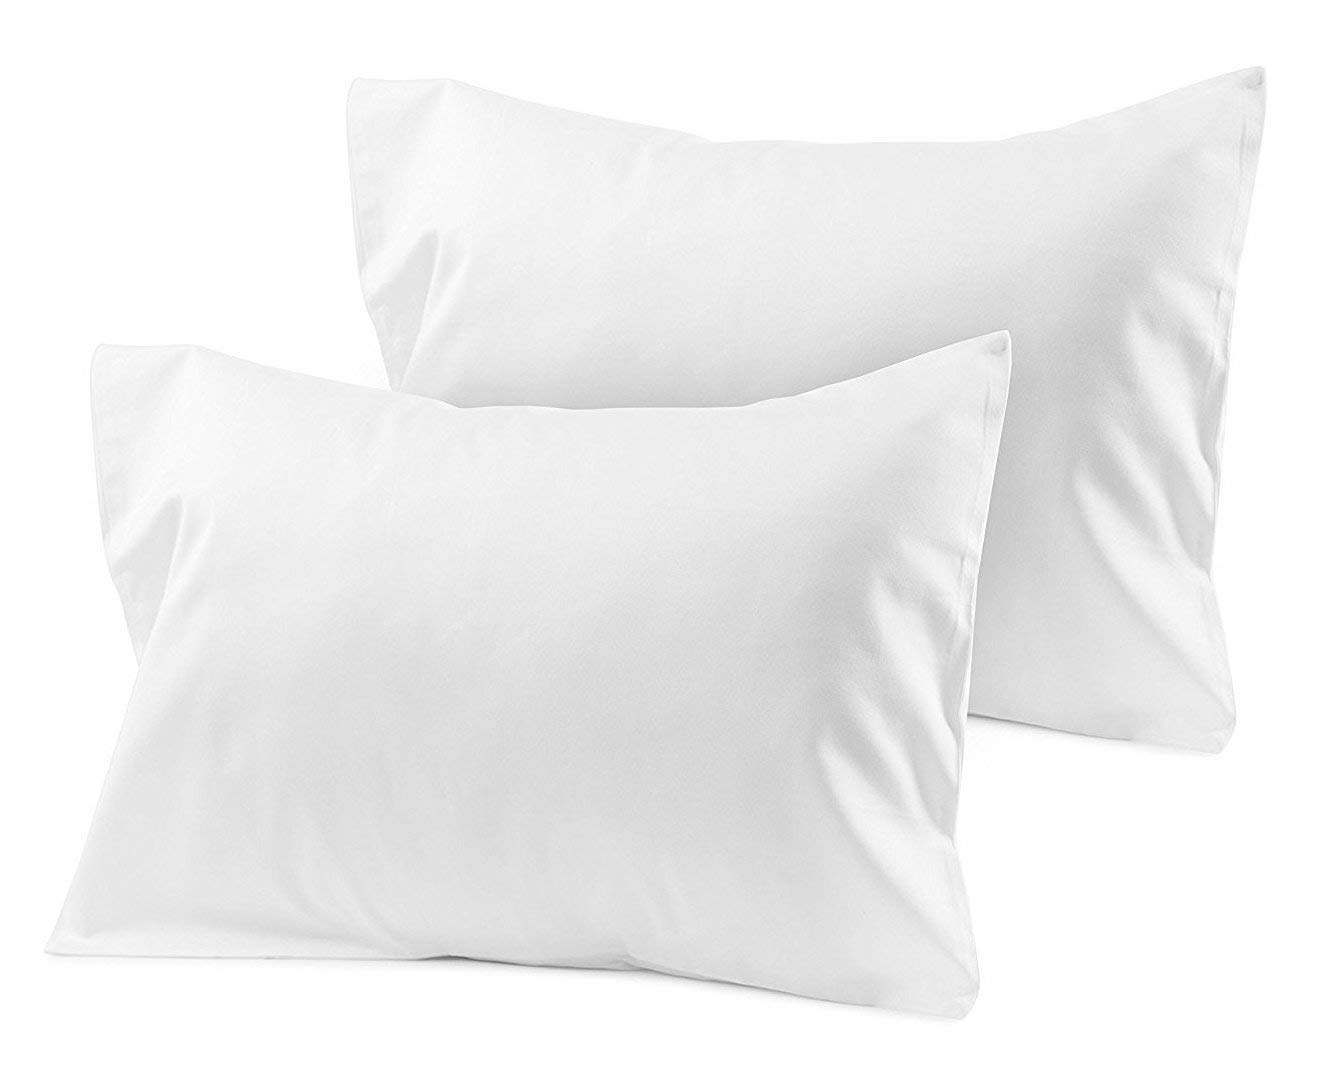 Travel Pillow Cases 14x20 Size Set of 2 Zipper Travel Pillowcase White Solid 600 Thread Count Quality Toddler Pillowcase 100% Soft Egyptian Cotton by beddingstar